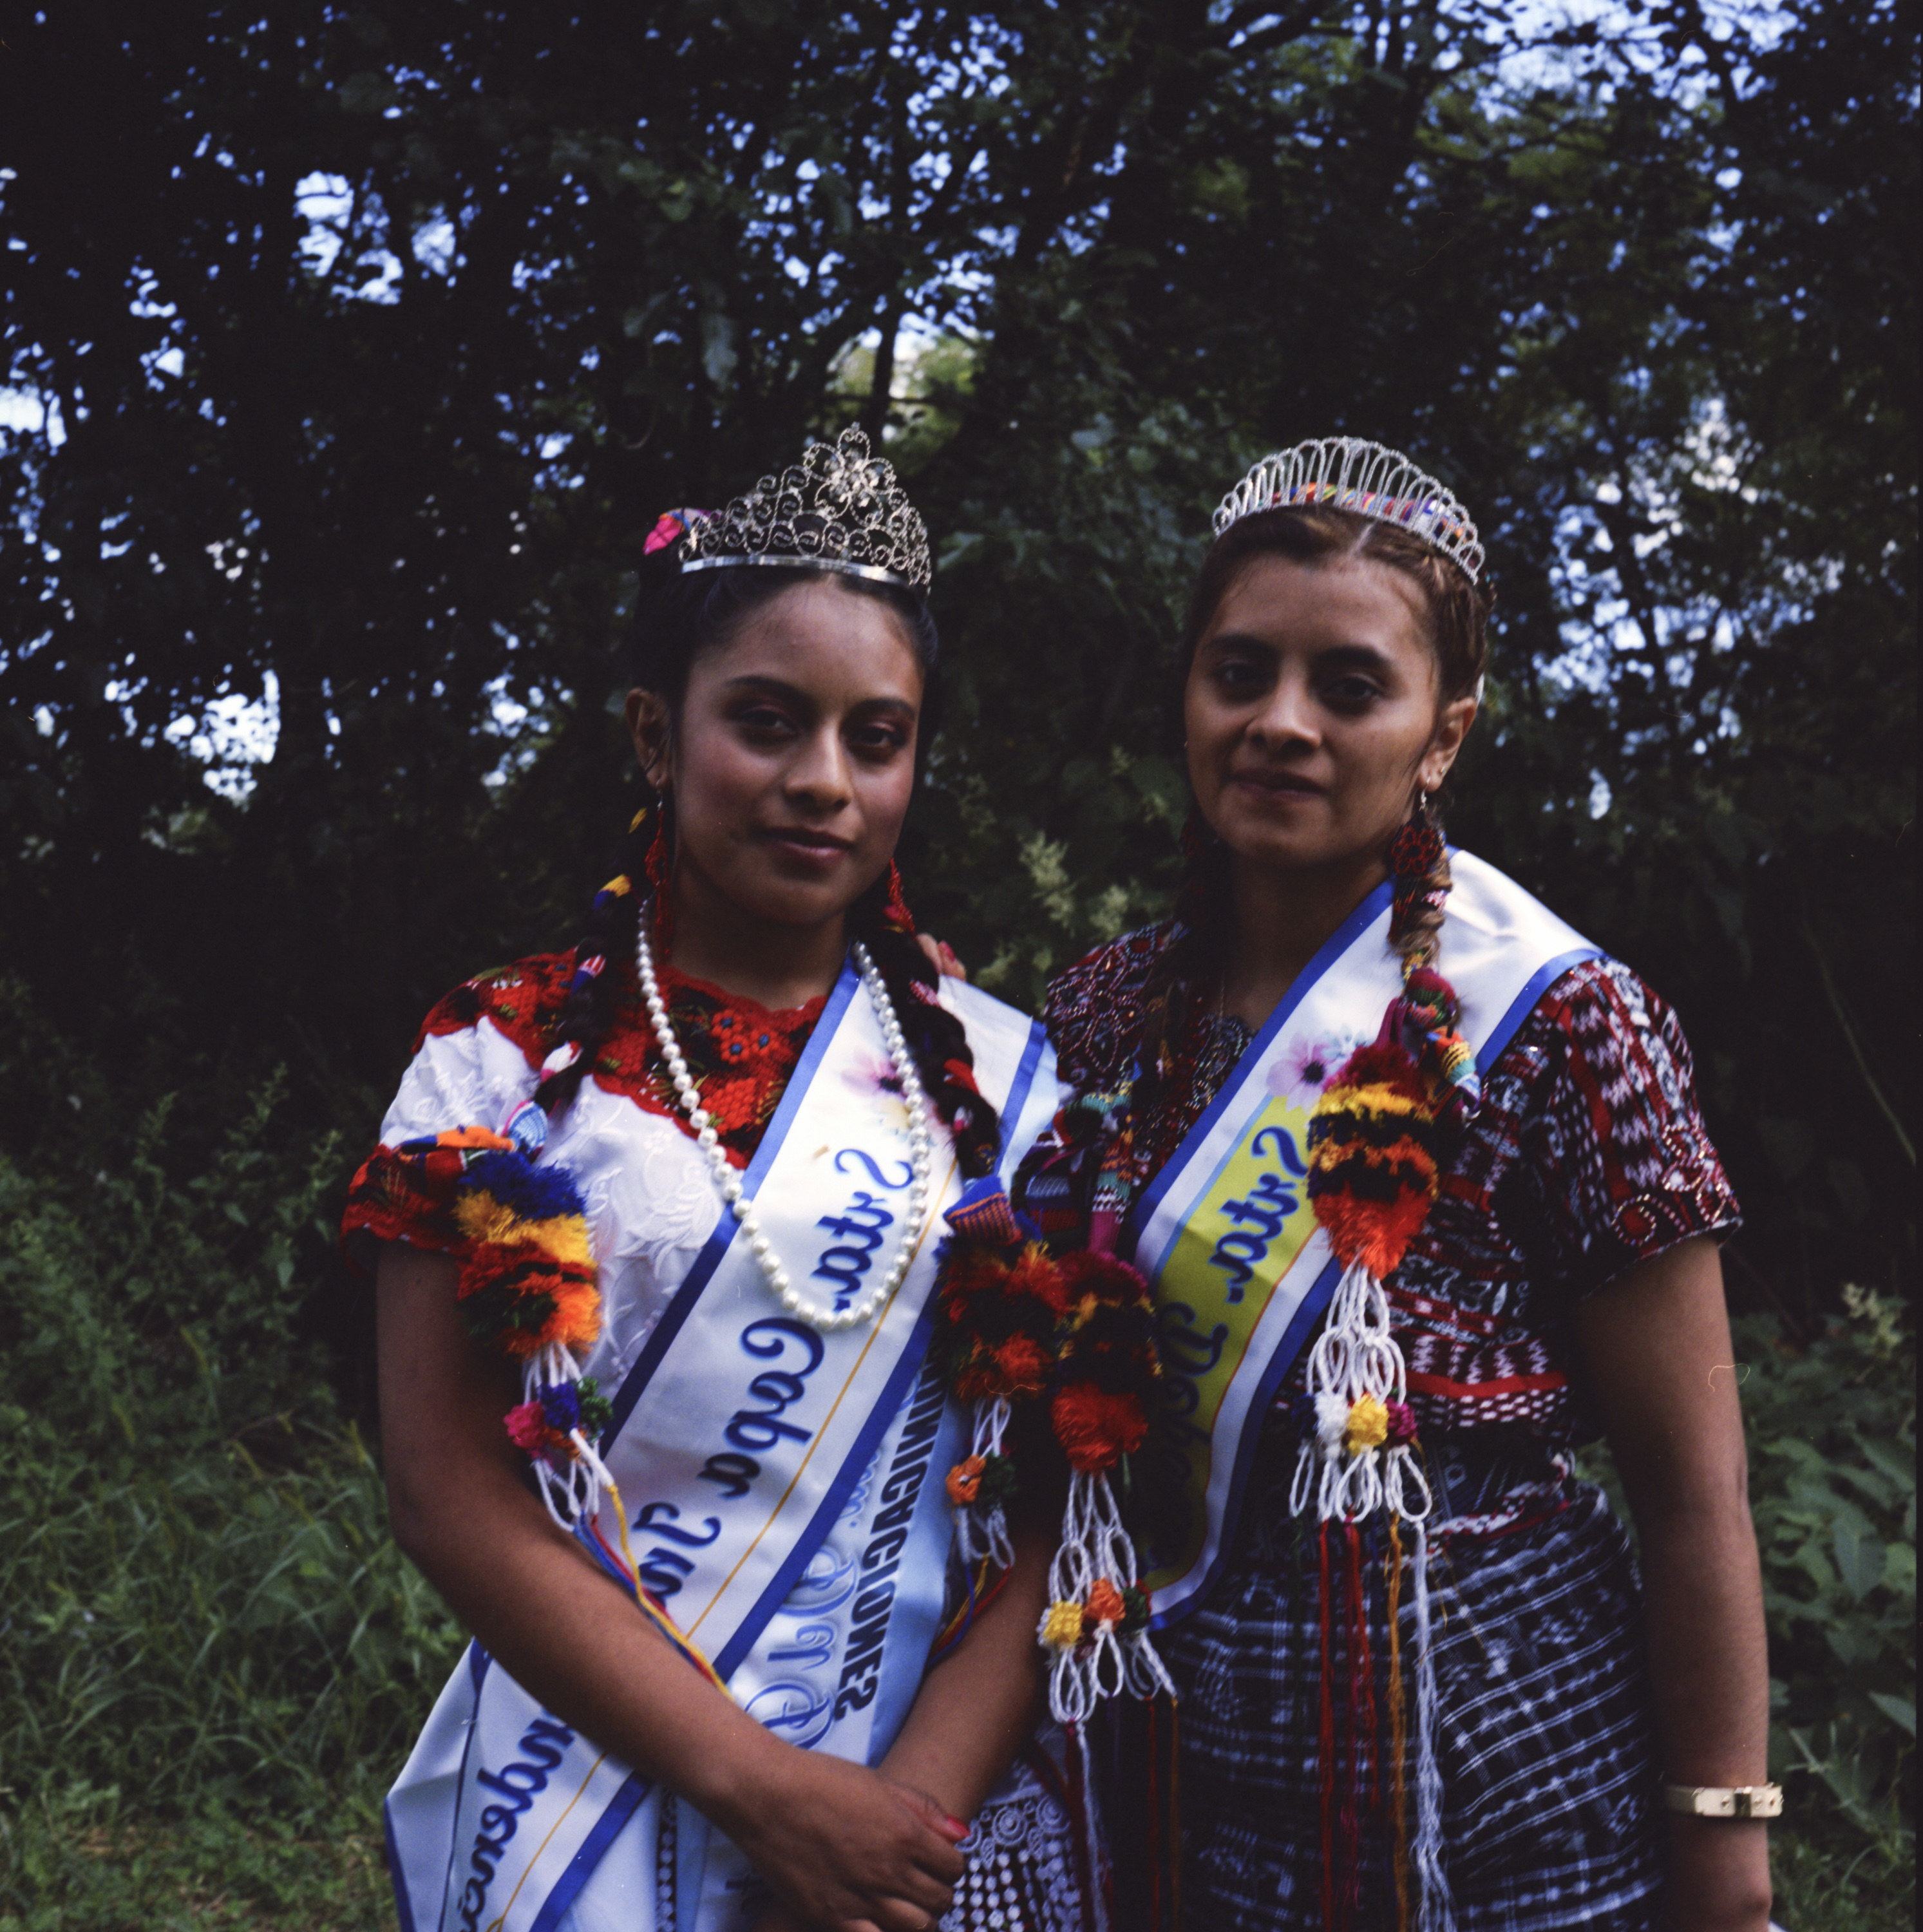 Two women in Indigenous clothing, tiaras, and sashes in front of greenery